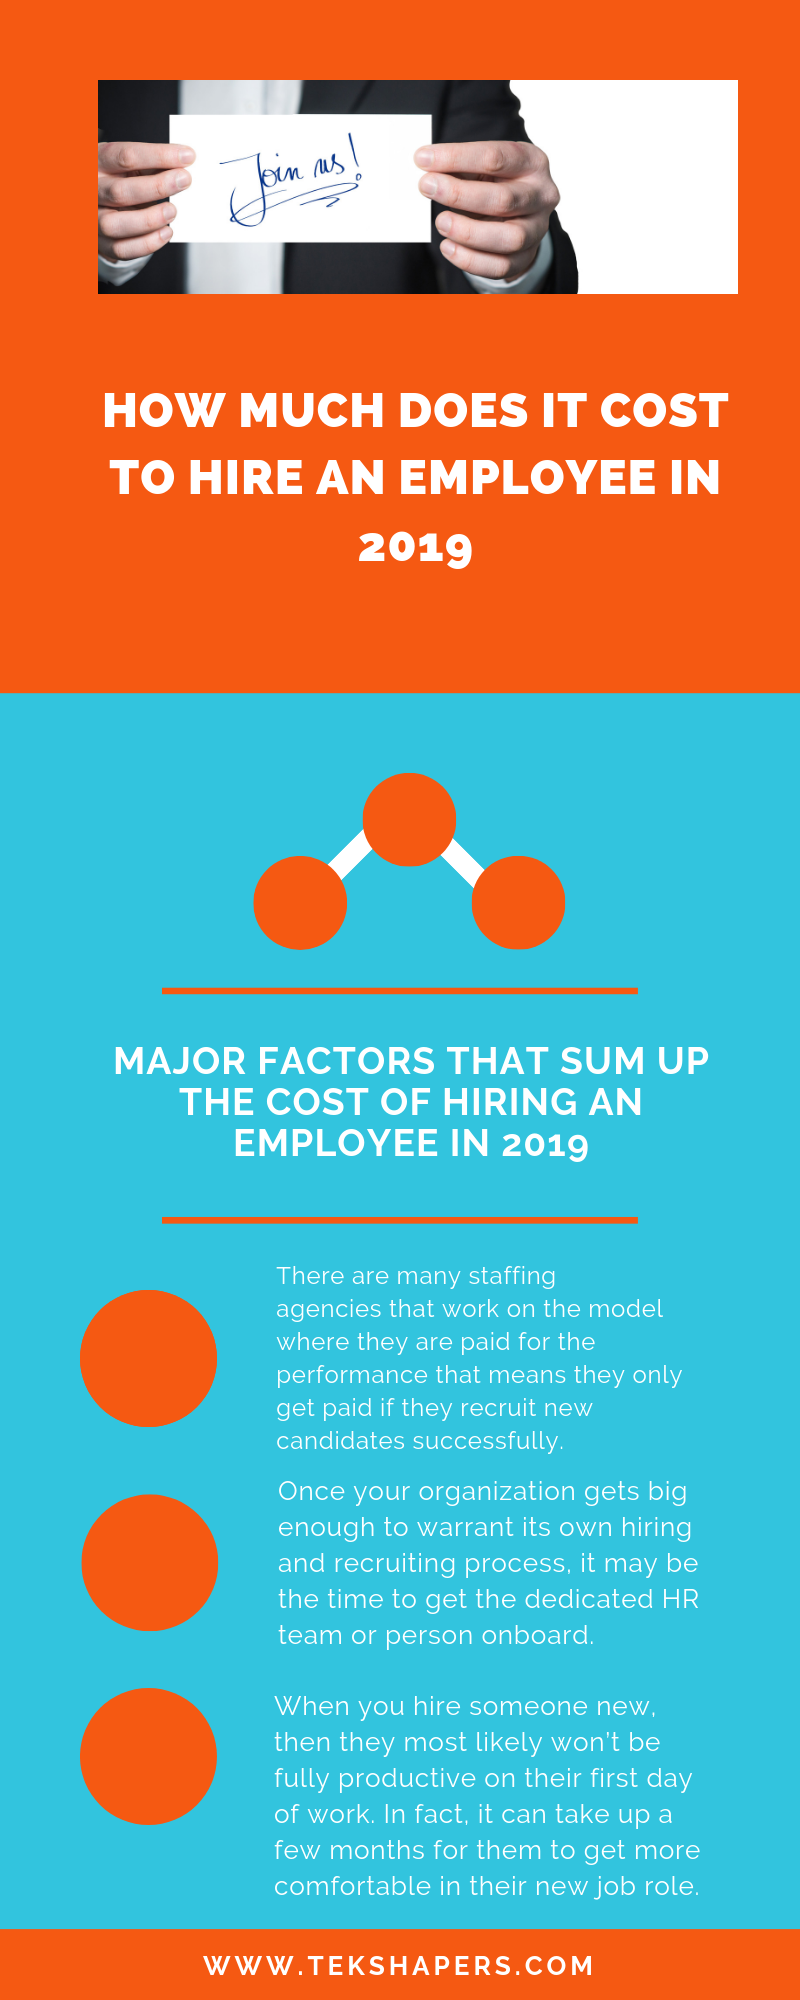 HOW MUCH DOES IT COST TO HIRE AN EMPLOYEE IN 2019 ...